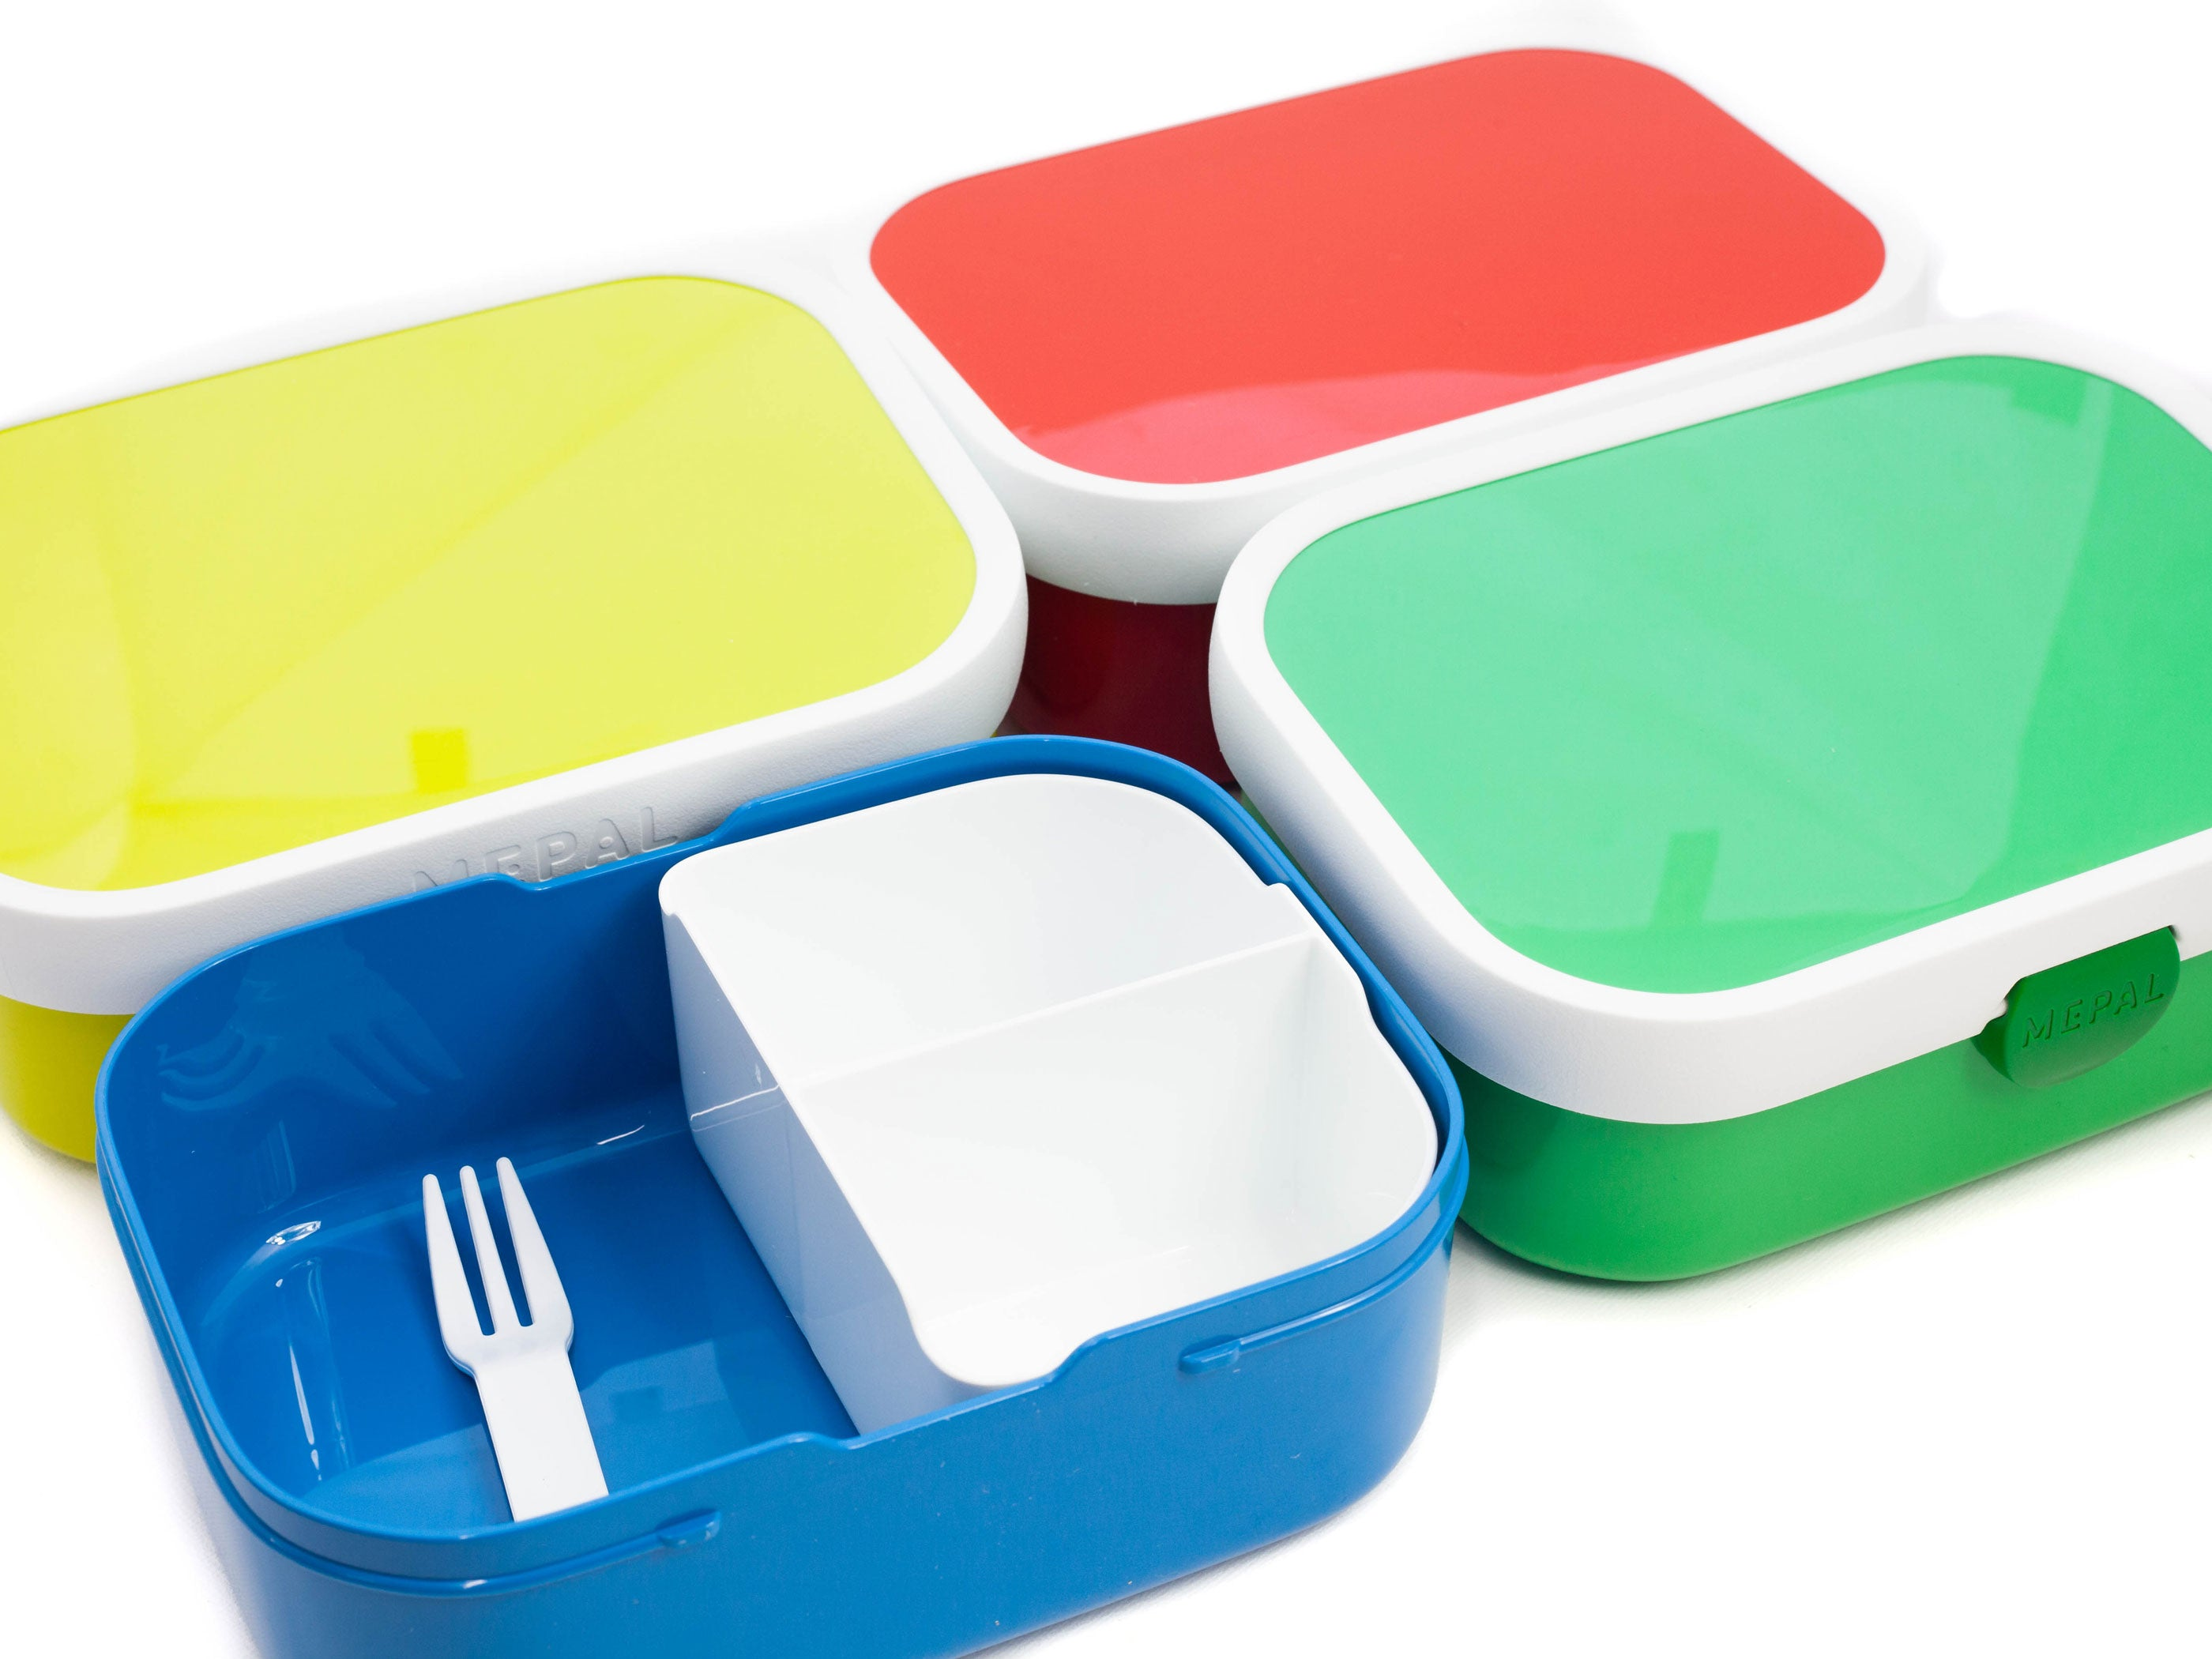 Mepal Campus Lunch Box | Green by Space Joy - Bento&co Japanese Bento Lunch Boxes and Kitchenware Specialists